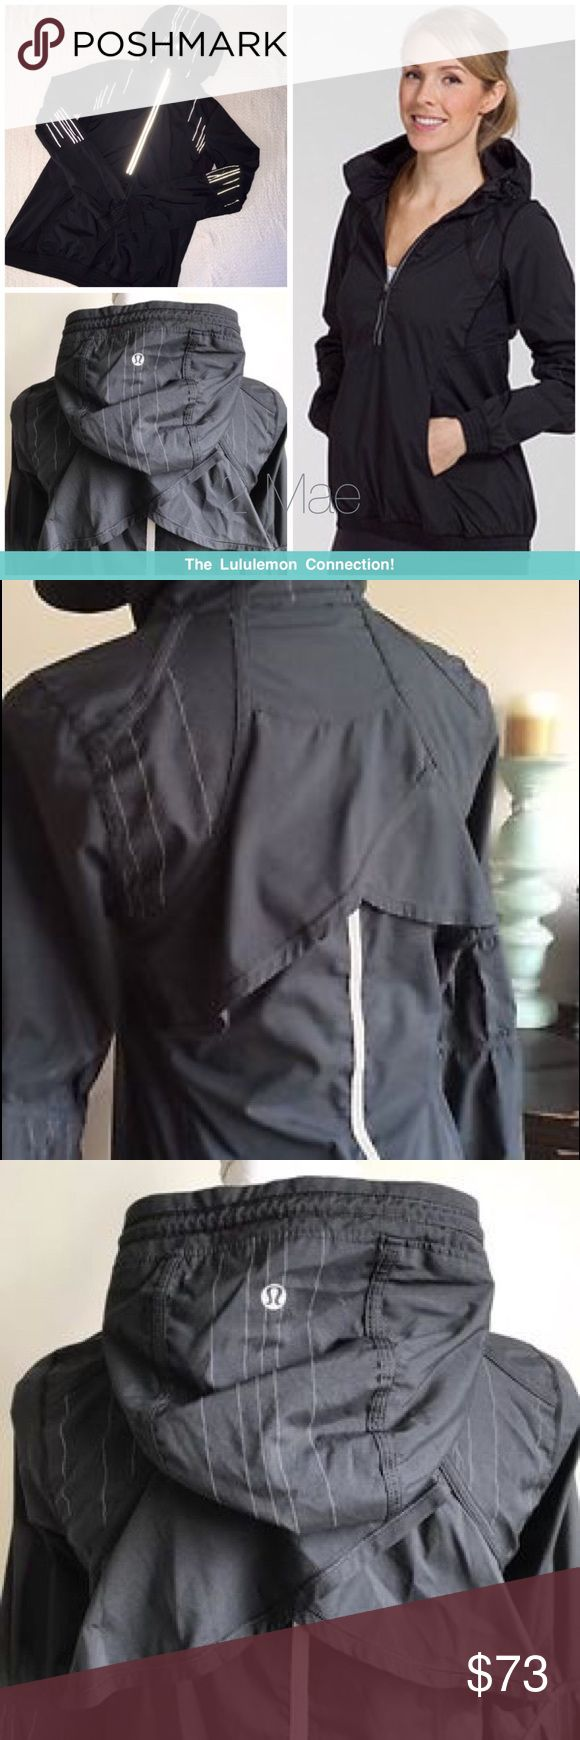 Lululemon Will Power half zip windbreaker Comes from a Very Clean, Smoke Free home *Excellent condition * No rips, pulls, tears, pilling, etc Message me with any questions! Sorry, no trades! Bundle 2 Items for 10% off Happy Poshing ☺️  Reposh! It didn't fit me lululemon athletica Jackets & Coats